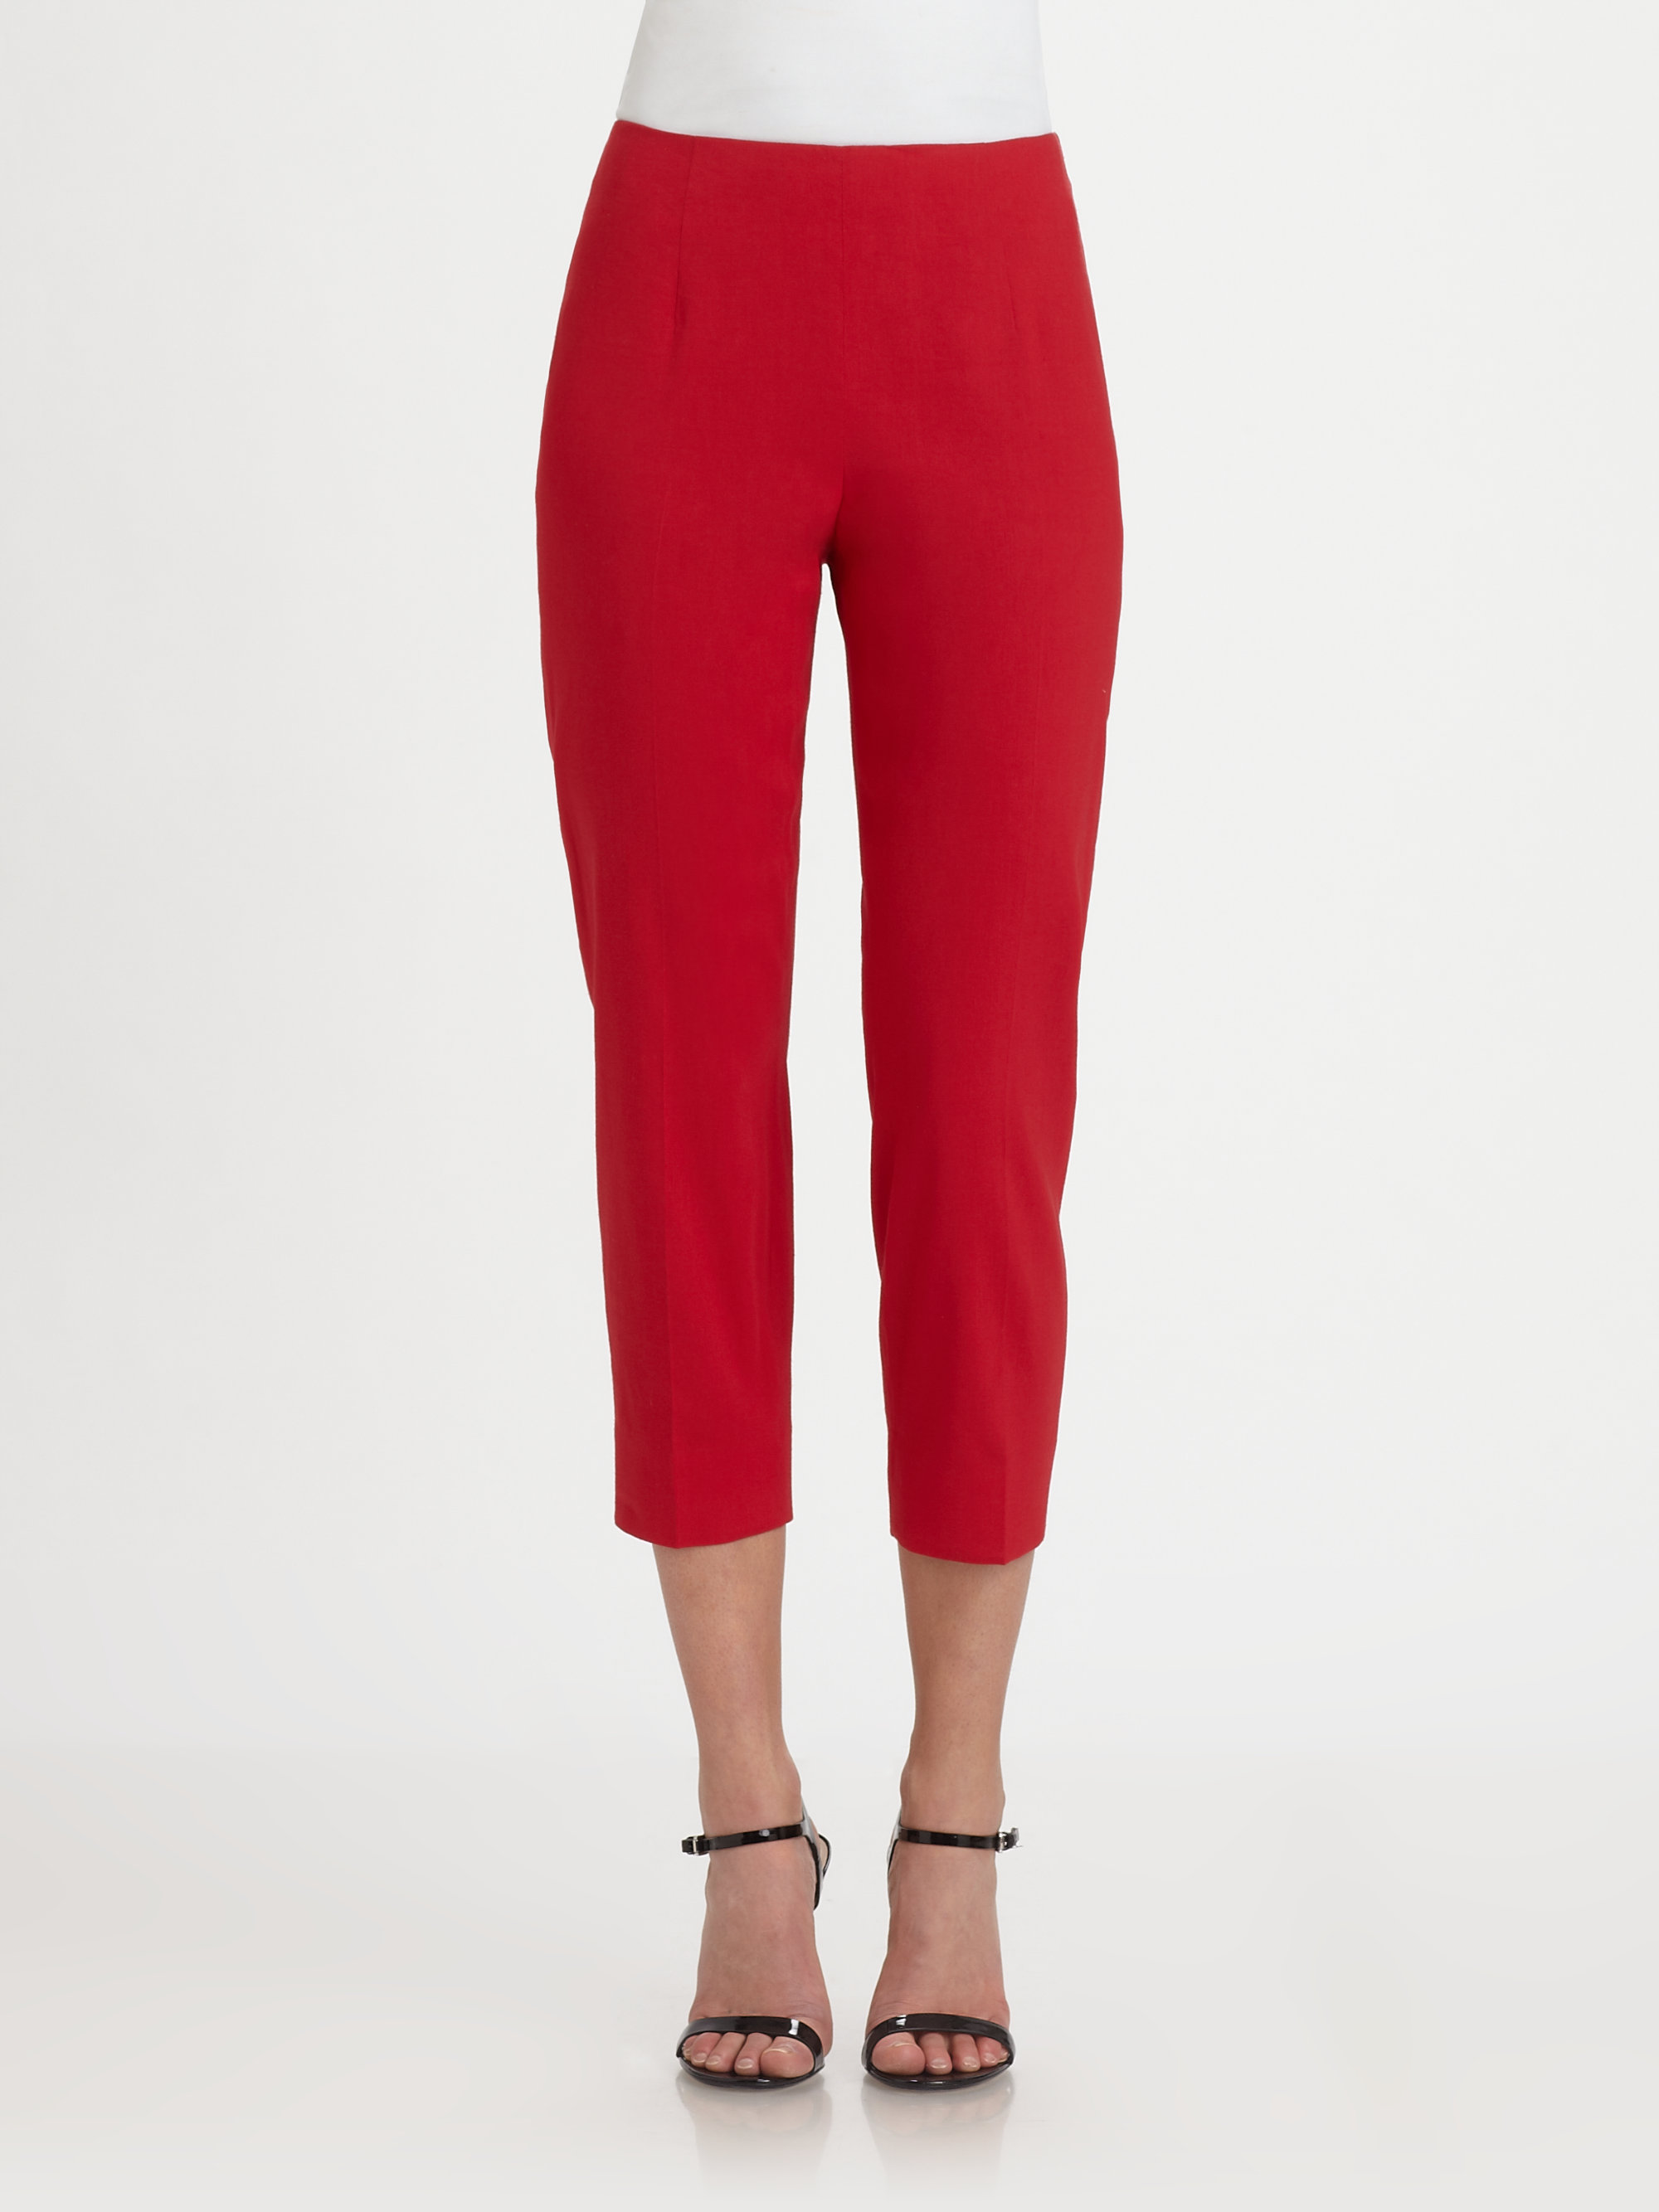 Shop eBay for great deals on Ecko Red Mid-Rise Capri, Cropped Jeans for Women. You'll find new or used products in Ecko Red Mid-Rise Capri, Cropped Jeans for Women on .